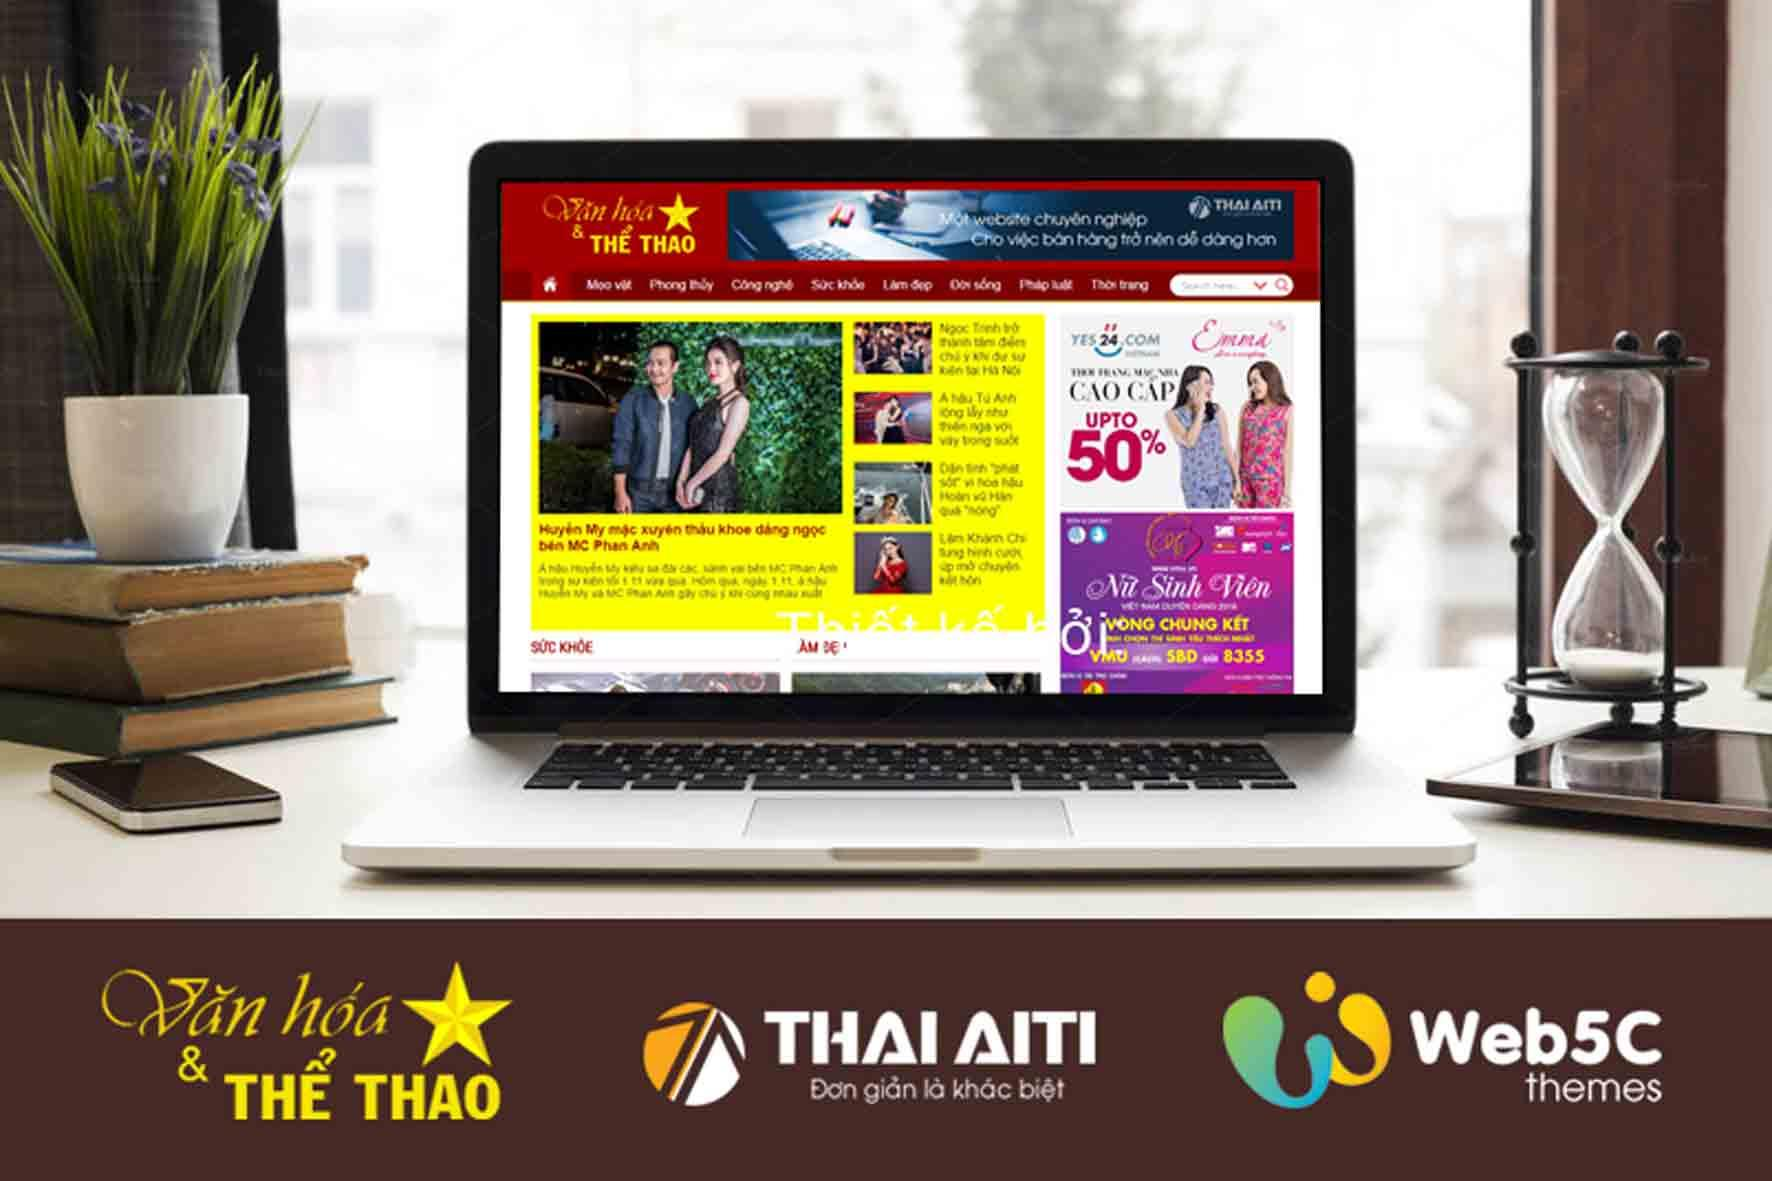 van-hoa-the-thao-wordpress1